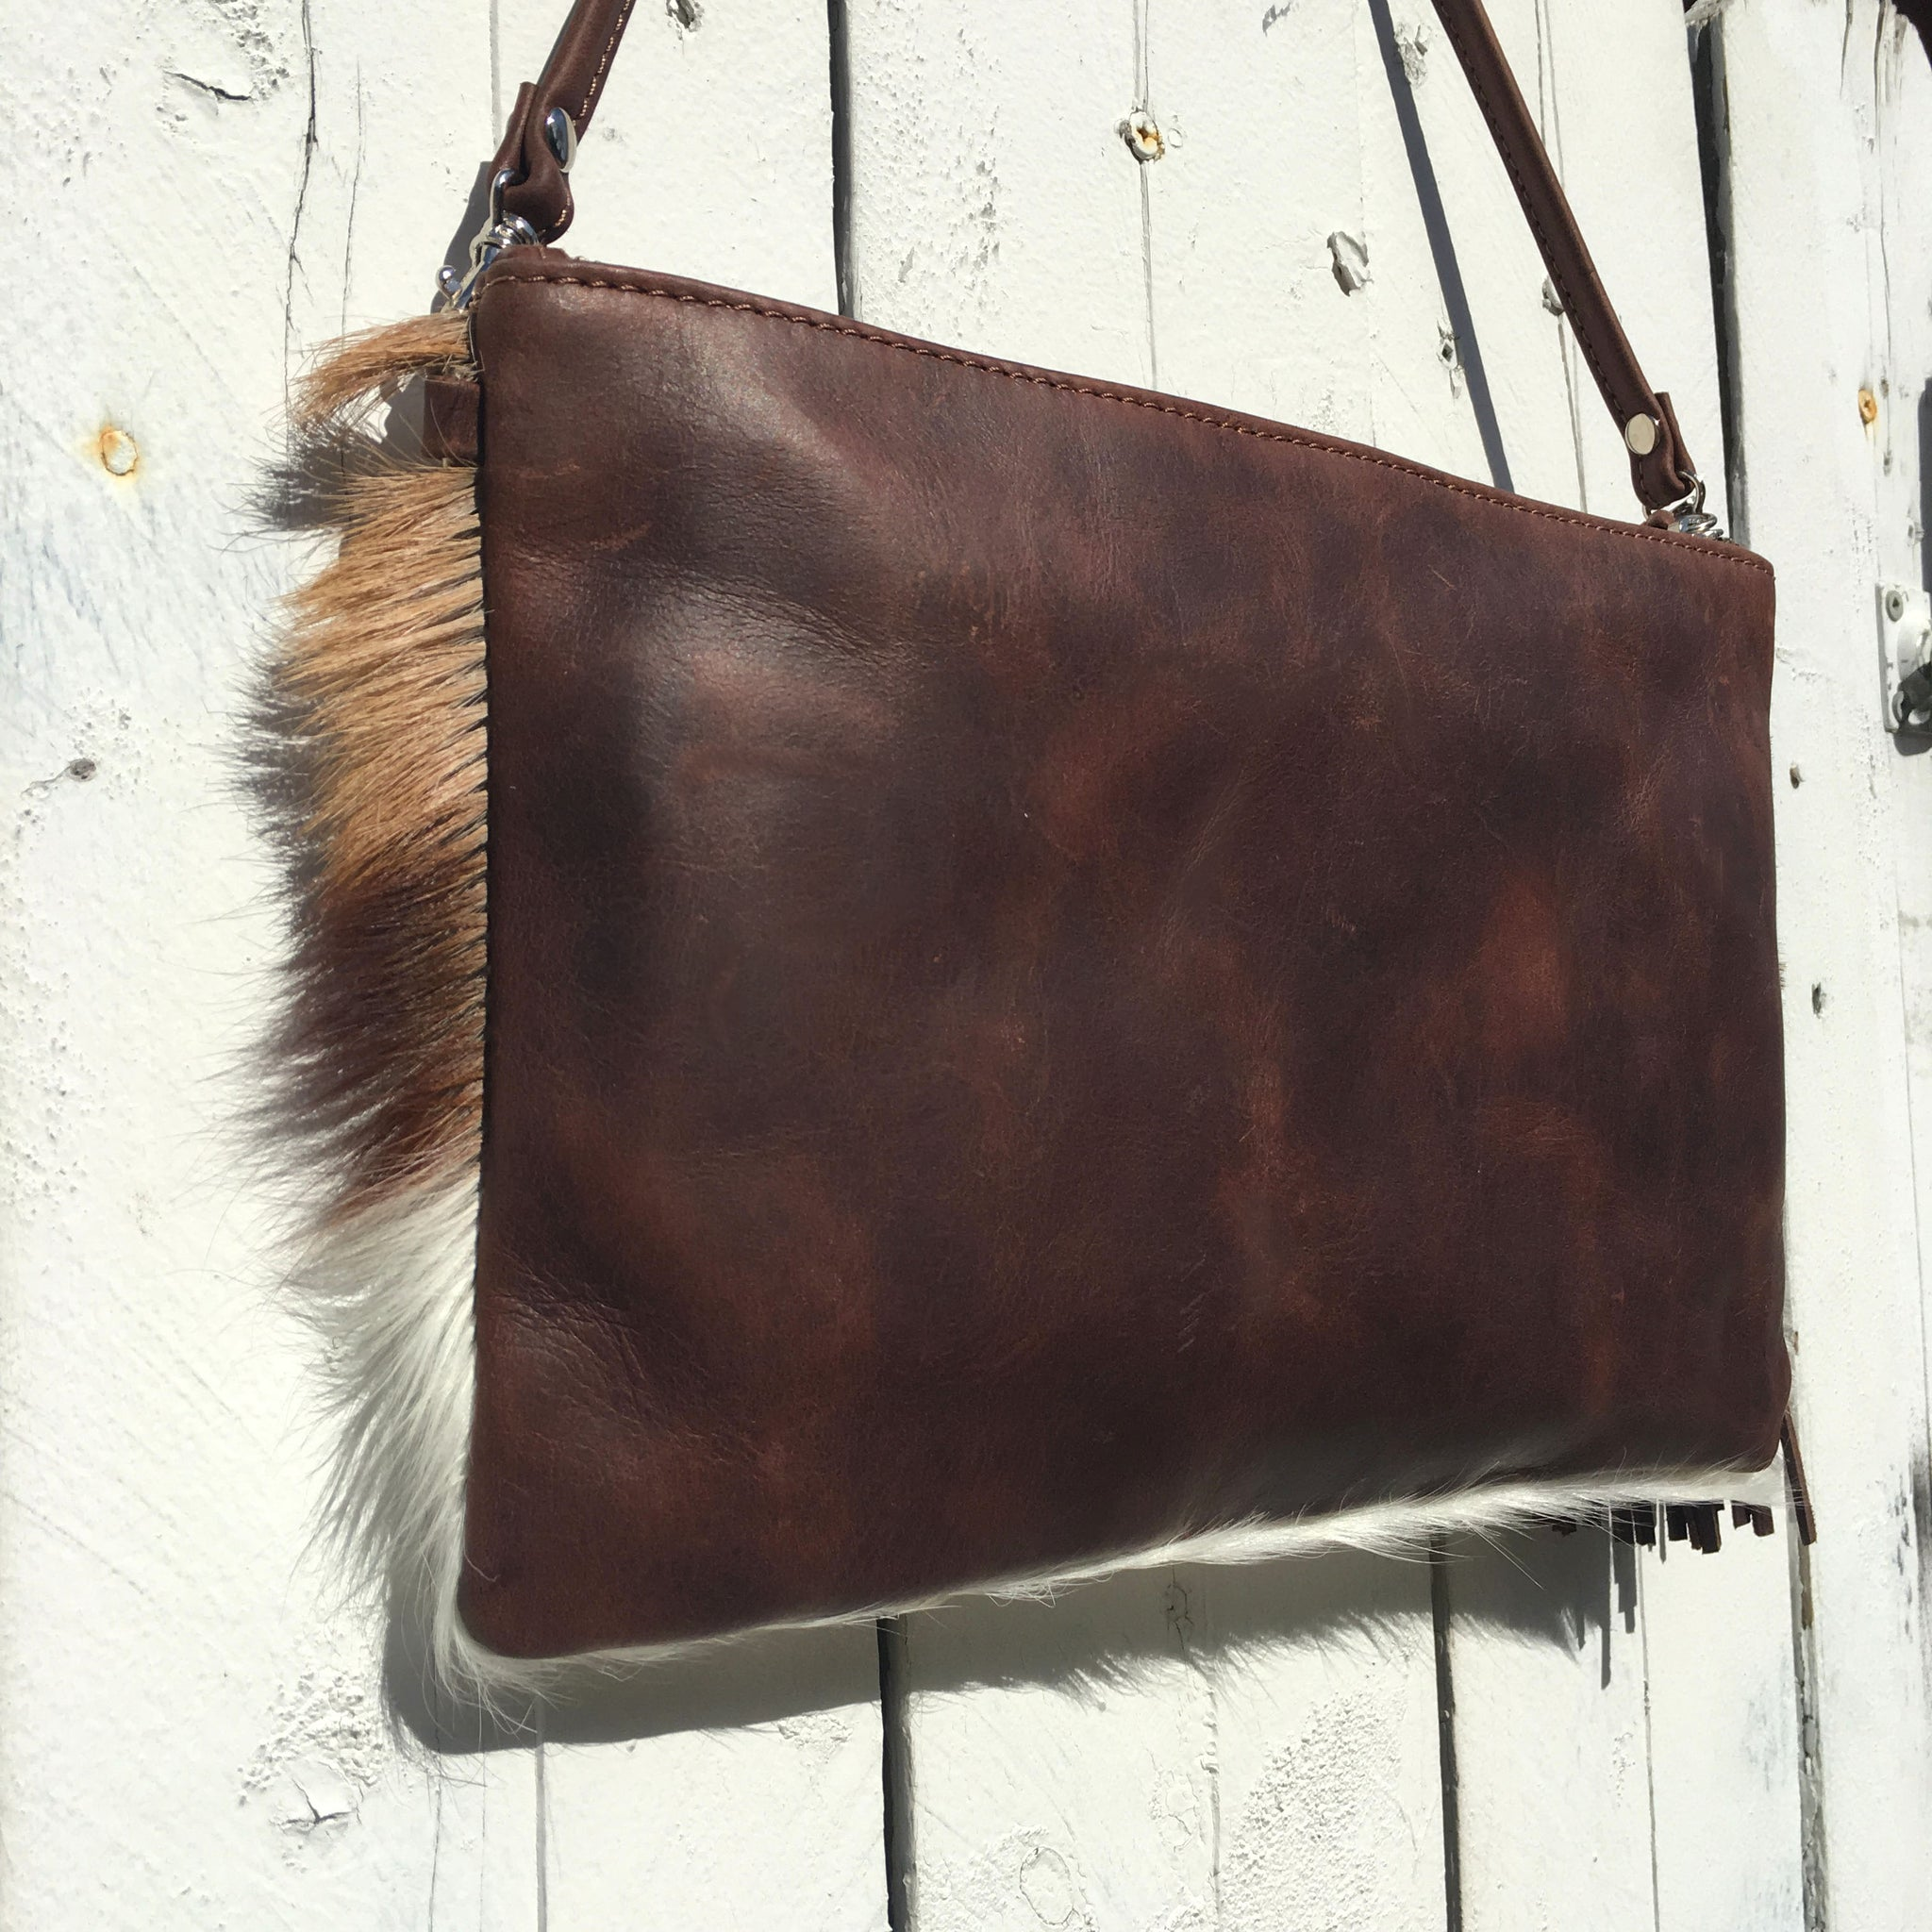 Three-Tone Clutch Springbok Antelope small African bag african handmade quality vegan leather fur